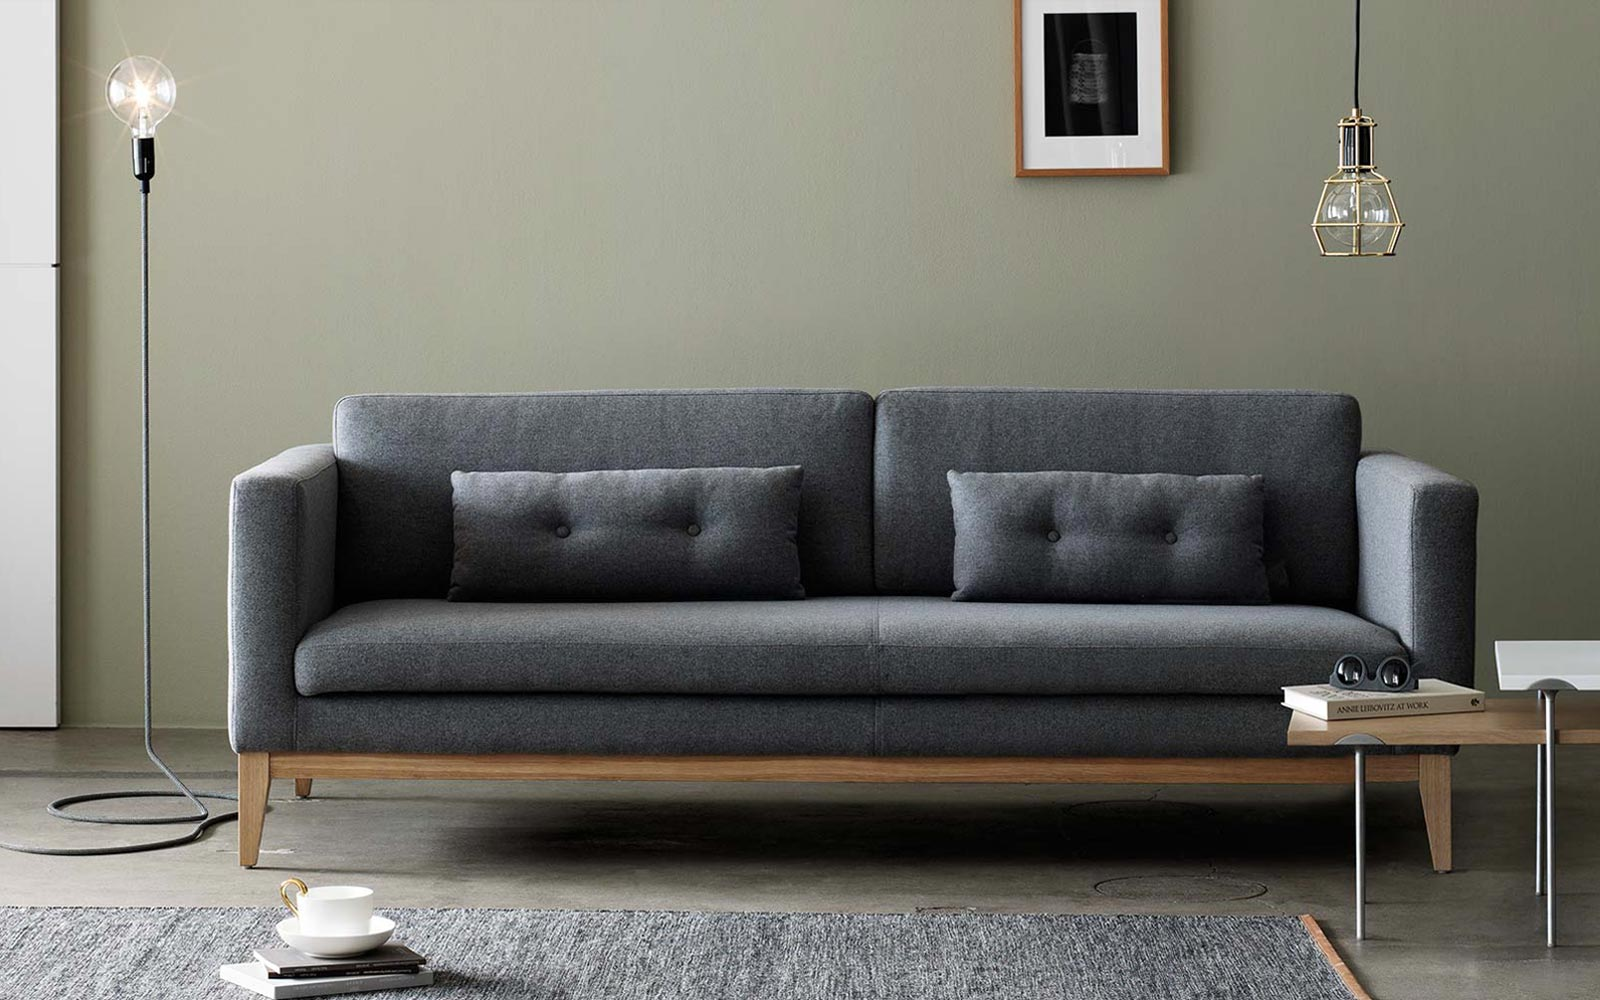 Mid-century modern sofa in living room